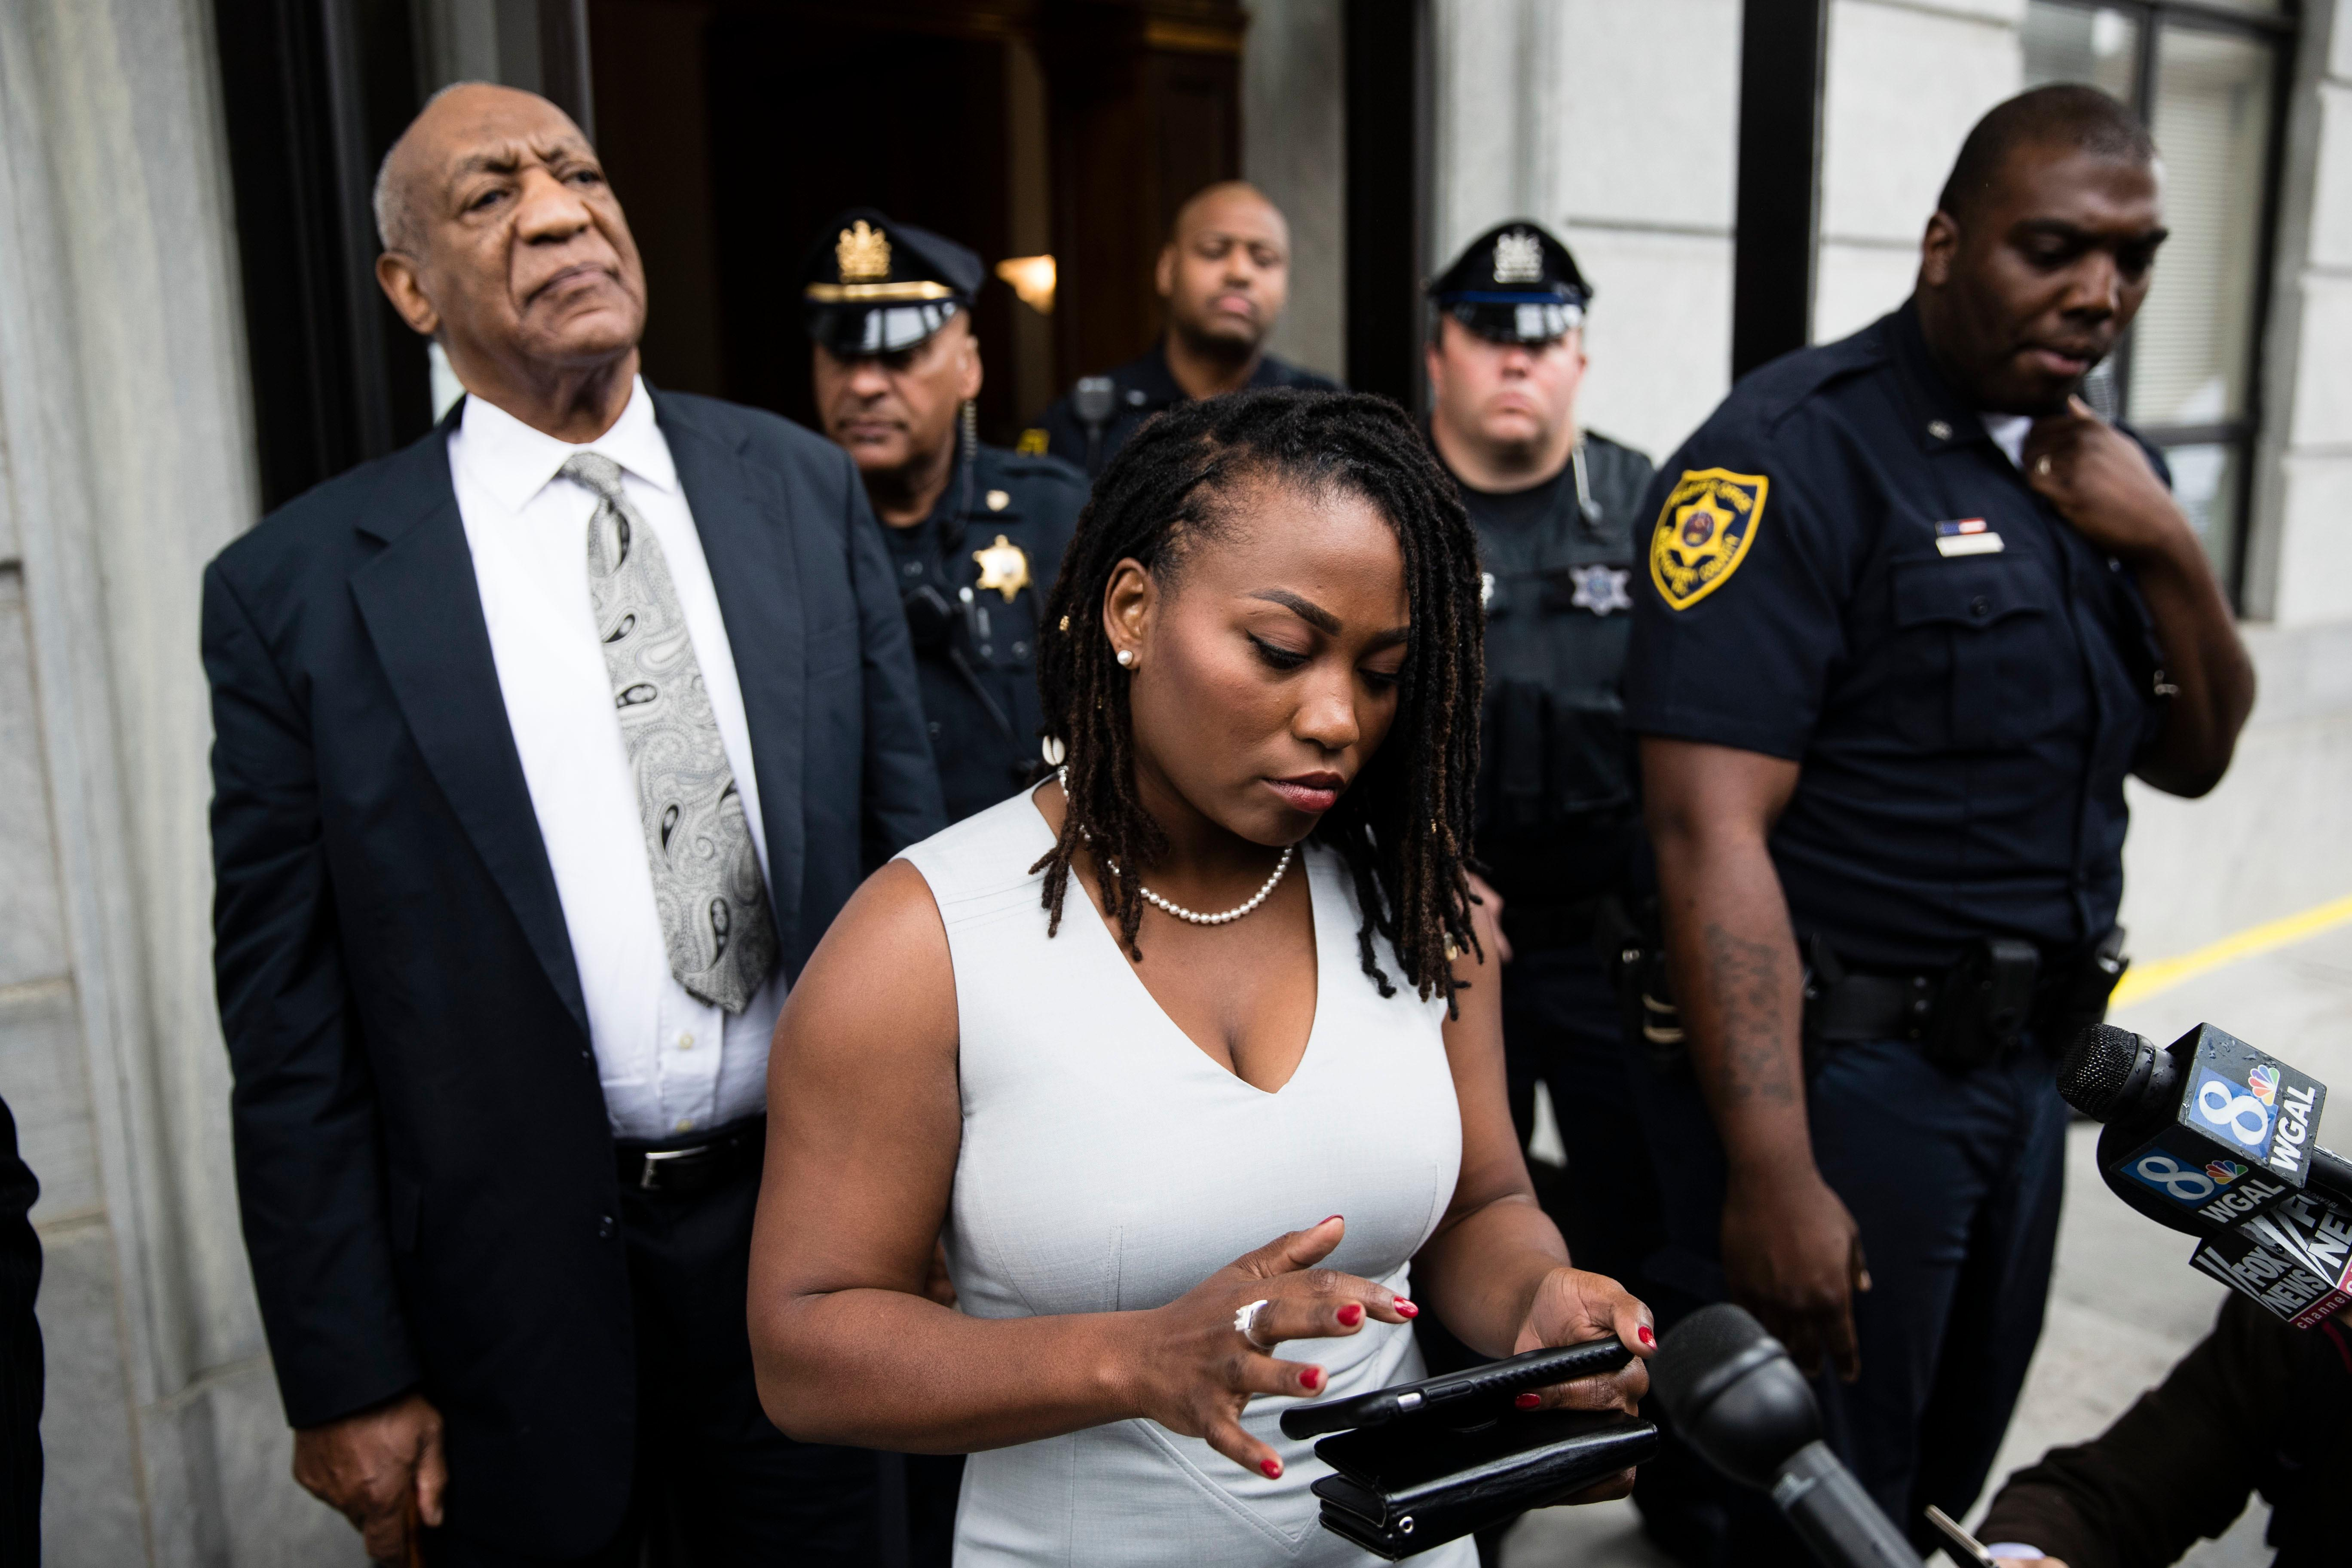 Bill Cosby listens to his wife Camille's statement being read aloud by Ebonee M. Benson outside the Montgomery County Courthouse after a mistrial in his sexual assault case in Norristown, Pa., Saturday, June 17, 2017. Cosby's trial ended without a verdict after jurors failed to reach a unanimous decision. (AP Photo/Matt Rourke)